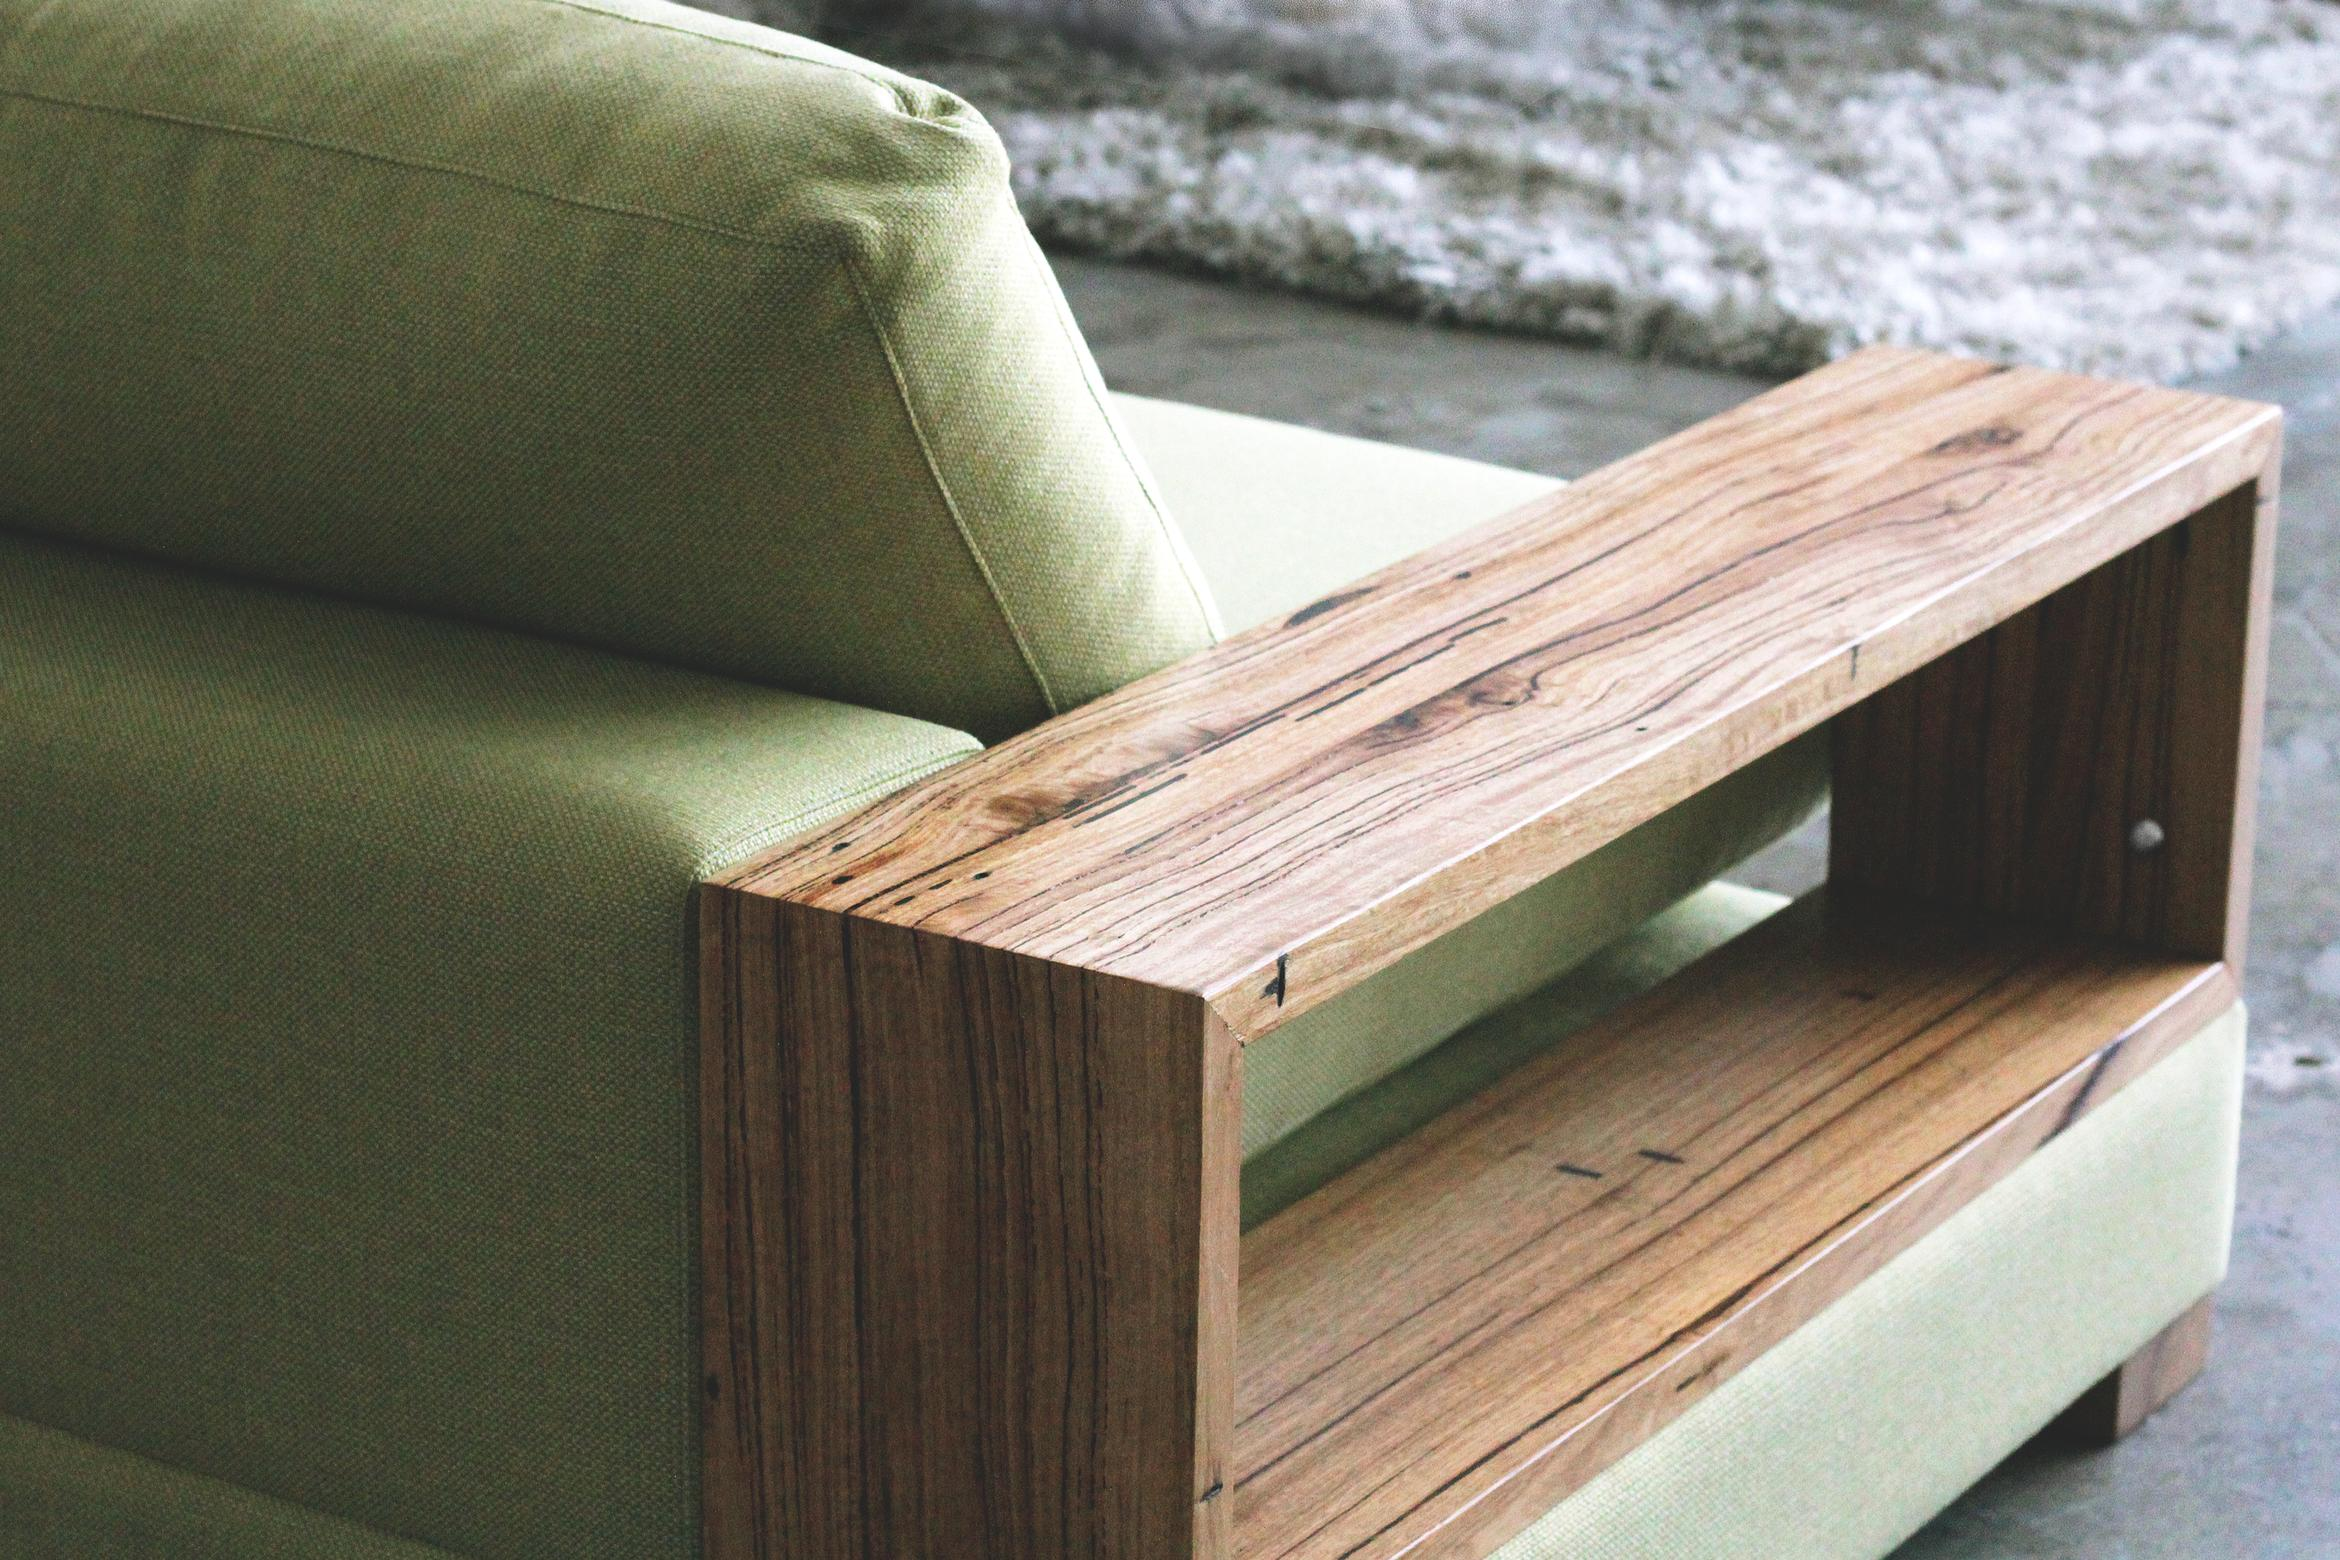 Neptune Sofa Recycled Timber Furniture Melbourne Yard